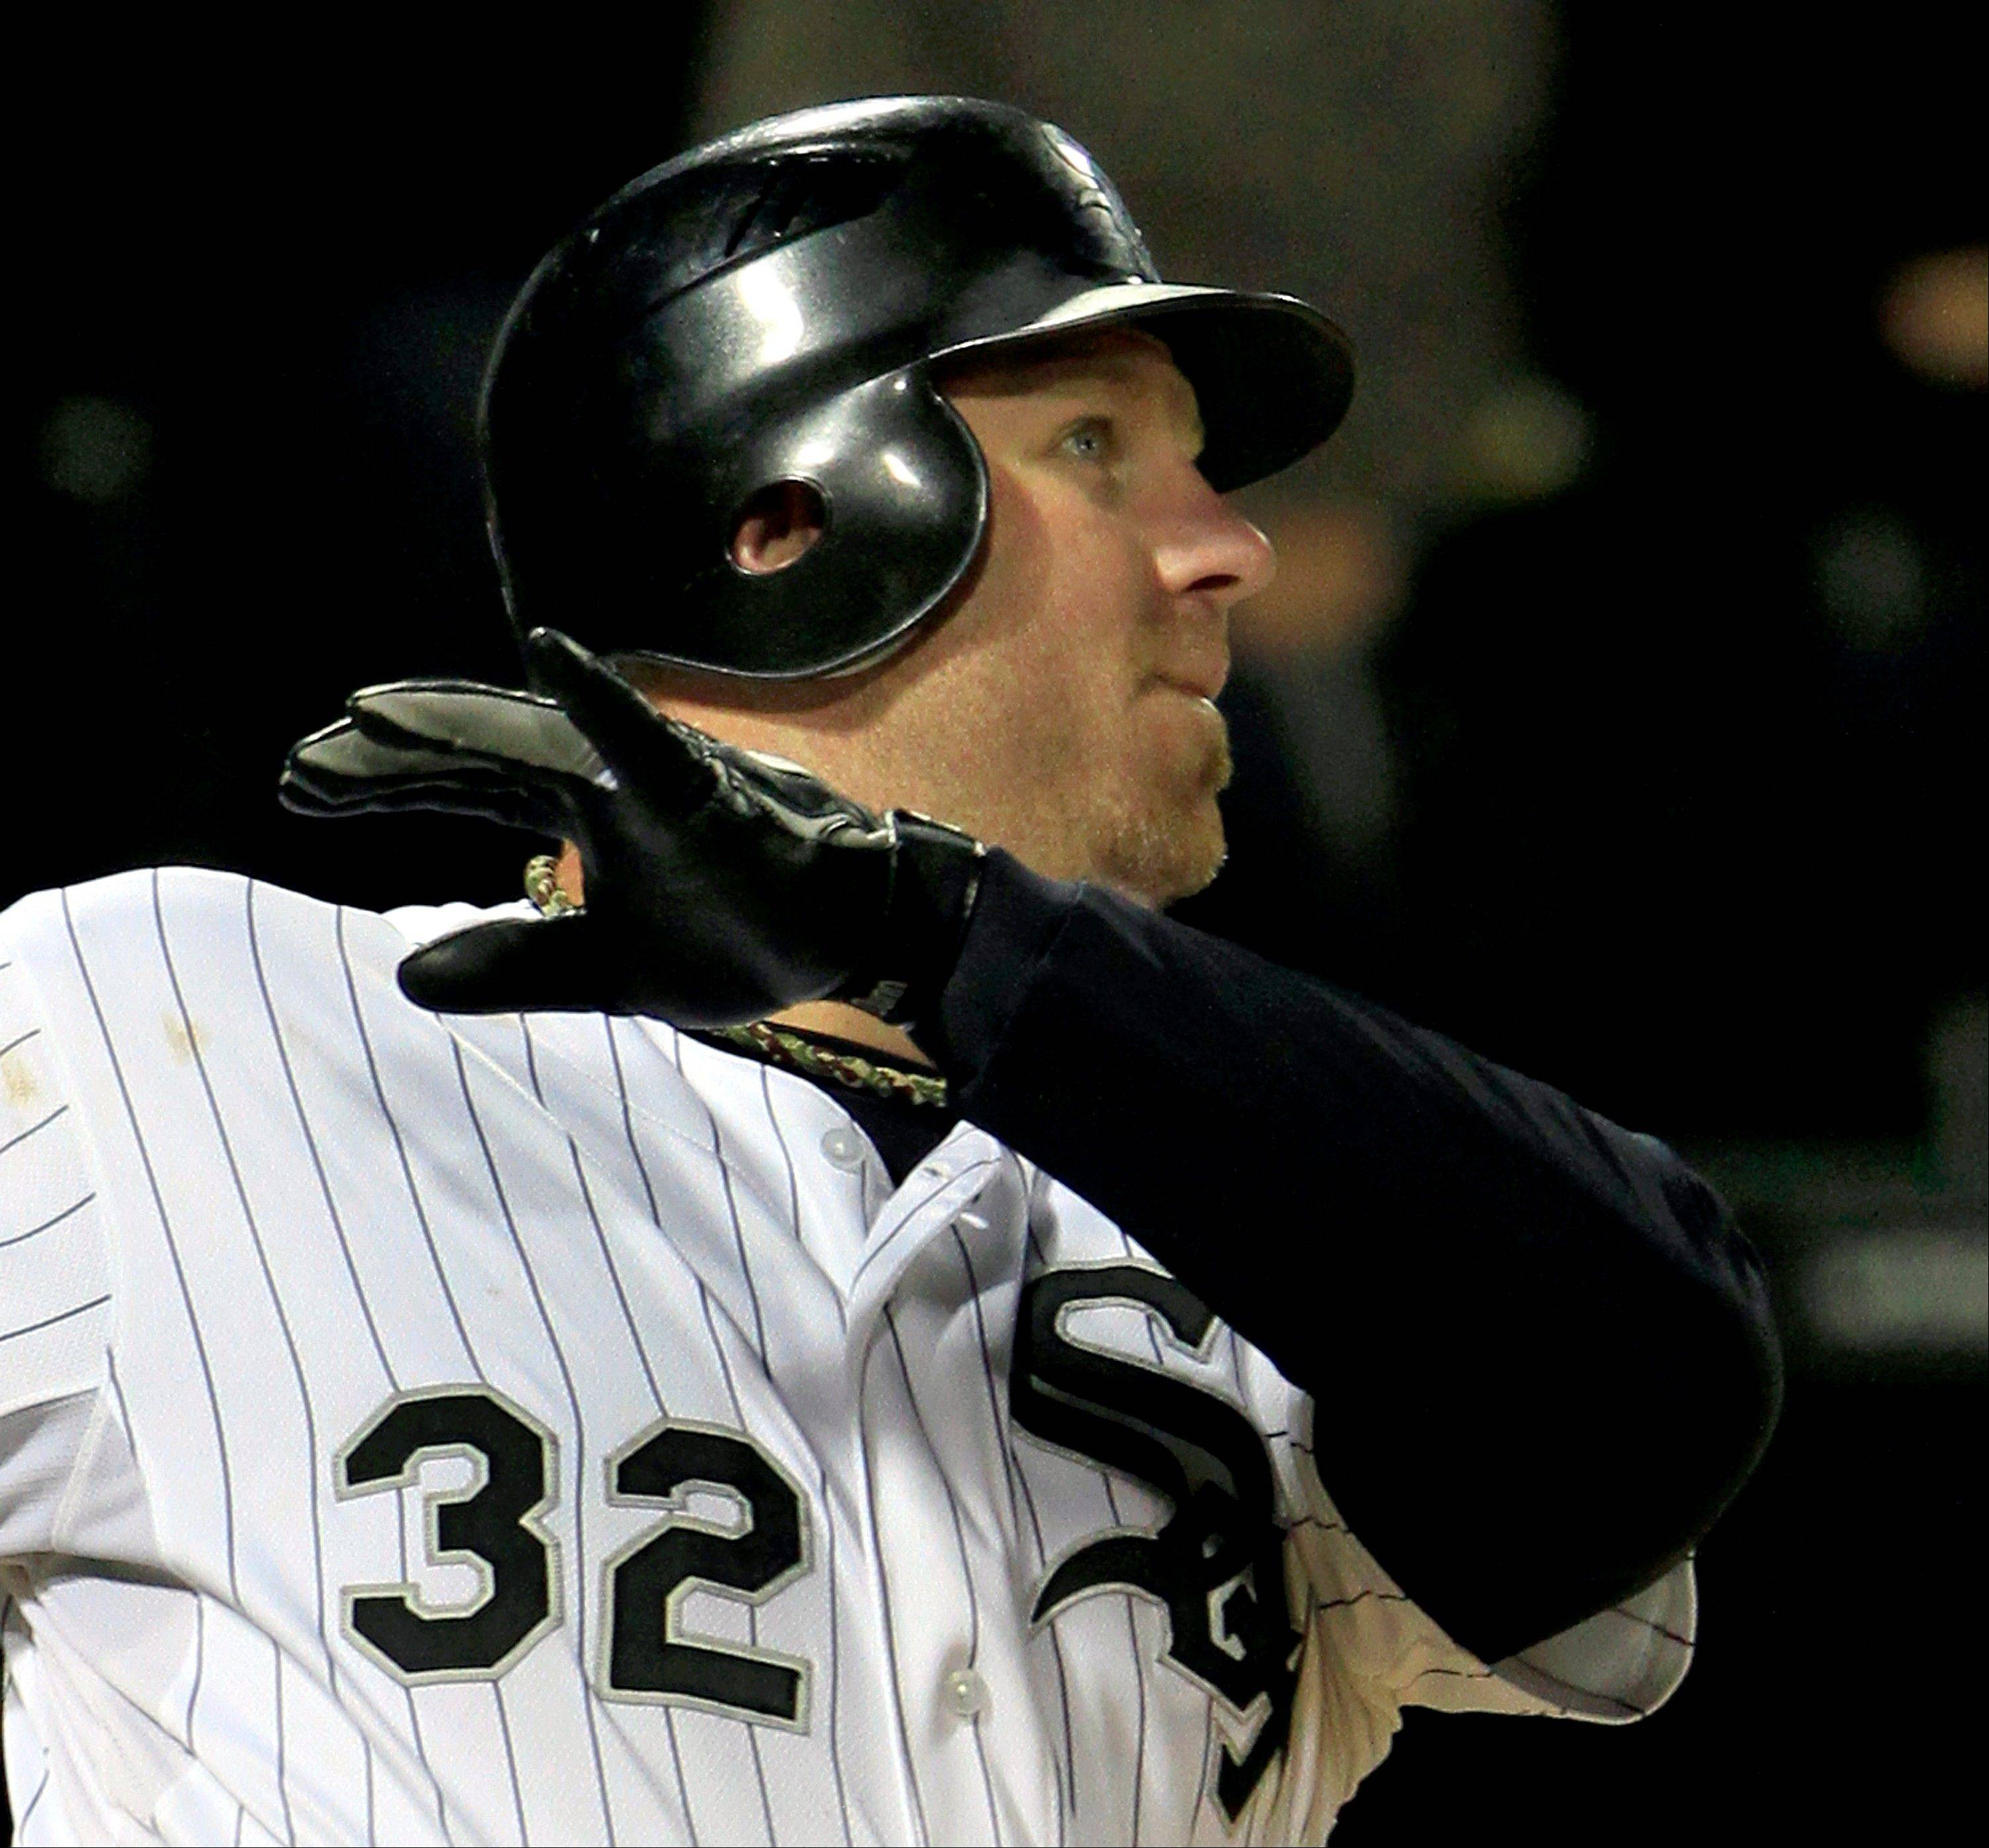 Adam Dunn watches his 3-run, game-deciding homer Monday night to keep the White Sox 1 game ahead of the second-place Tigers.